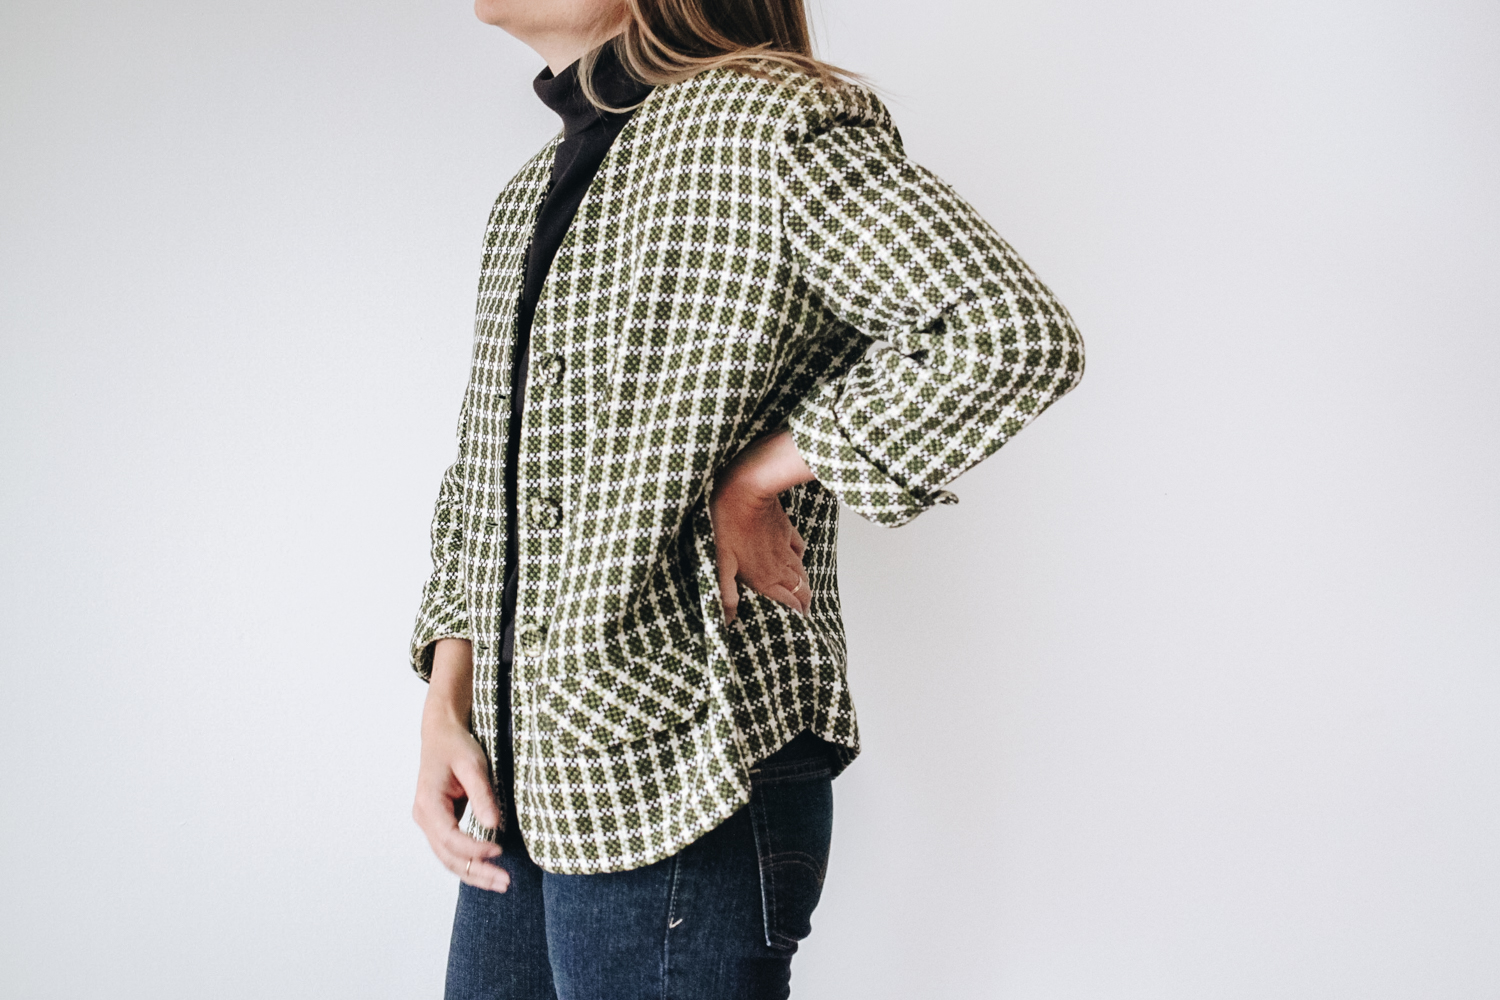 SHOP THIS PLAID LOOK